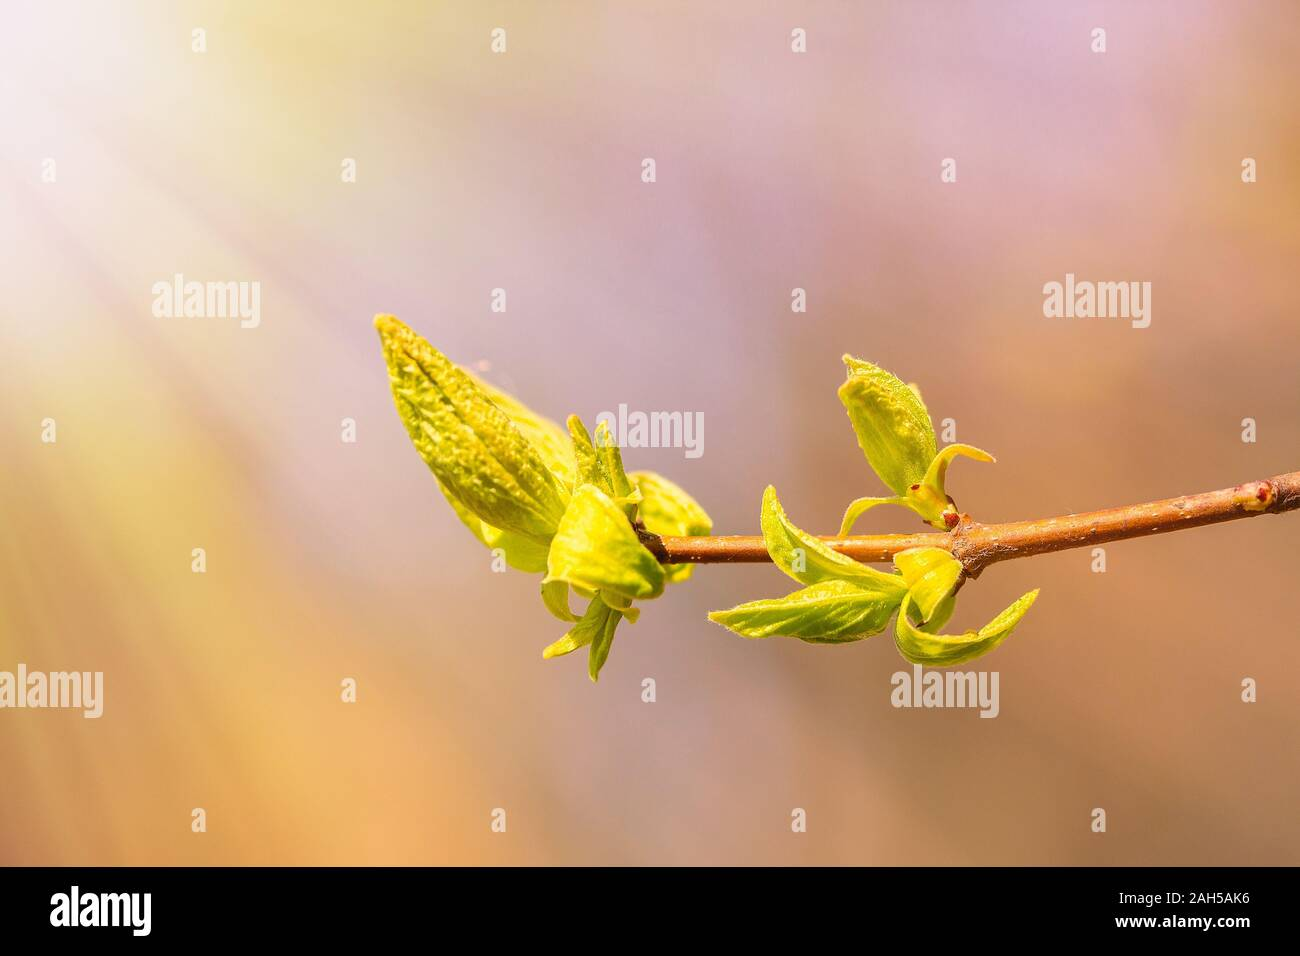 Spring bud. Composition of nature. Spring Awakening Concept Stock Photo